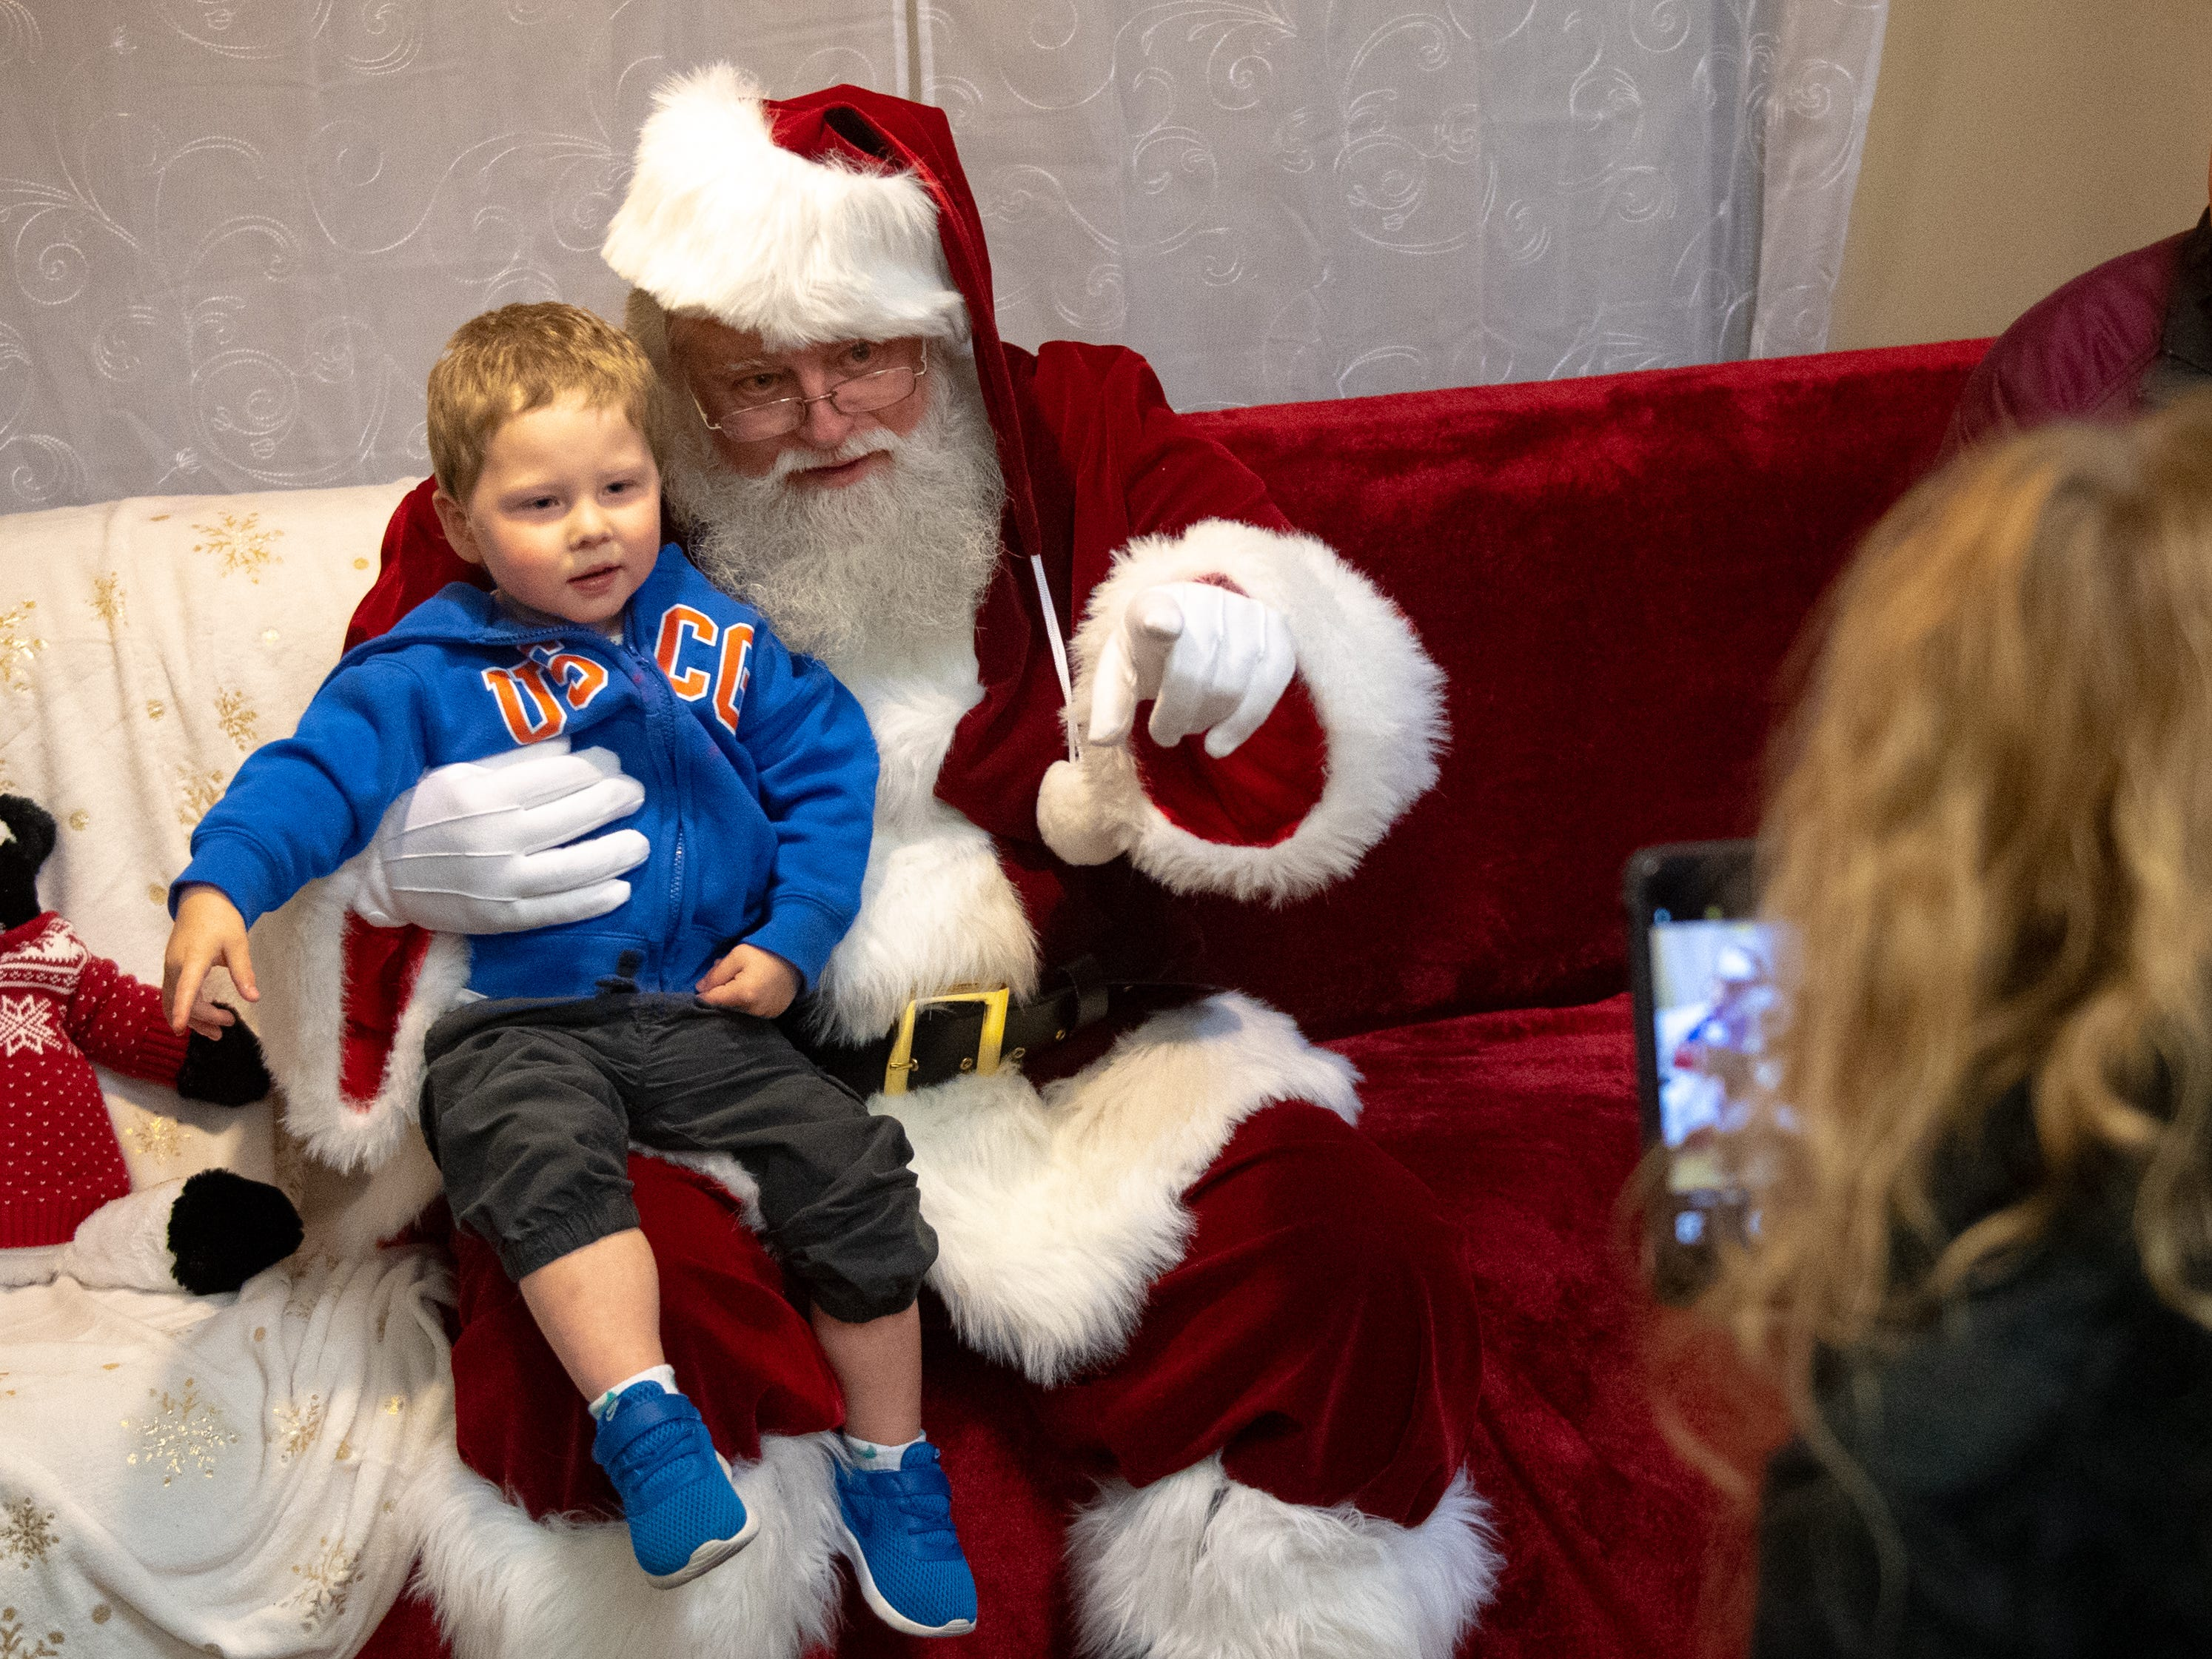 Carson Wertz, 2, of Newberry Township, poses with old Saint Nick for a photo during the Dinner with Santa and Santa Cow at Chick-fil-A in Springettsbury Township. Children were taught a few words in sign language as part of the special night designed to promoteinclusion for the hearing-impaired community .